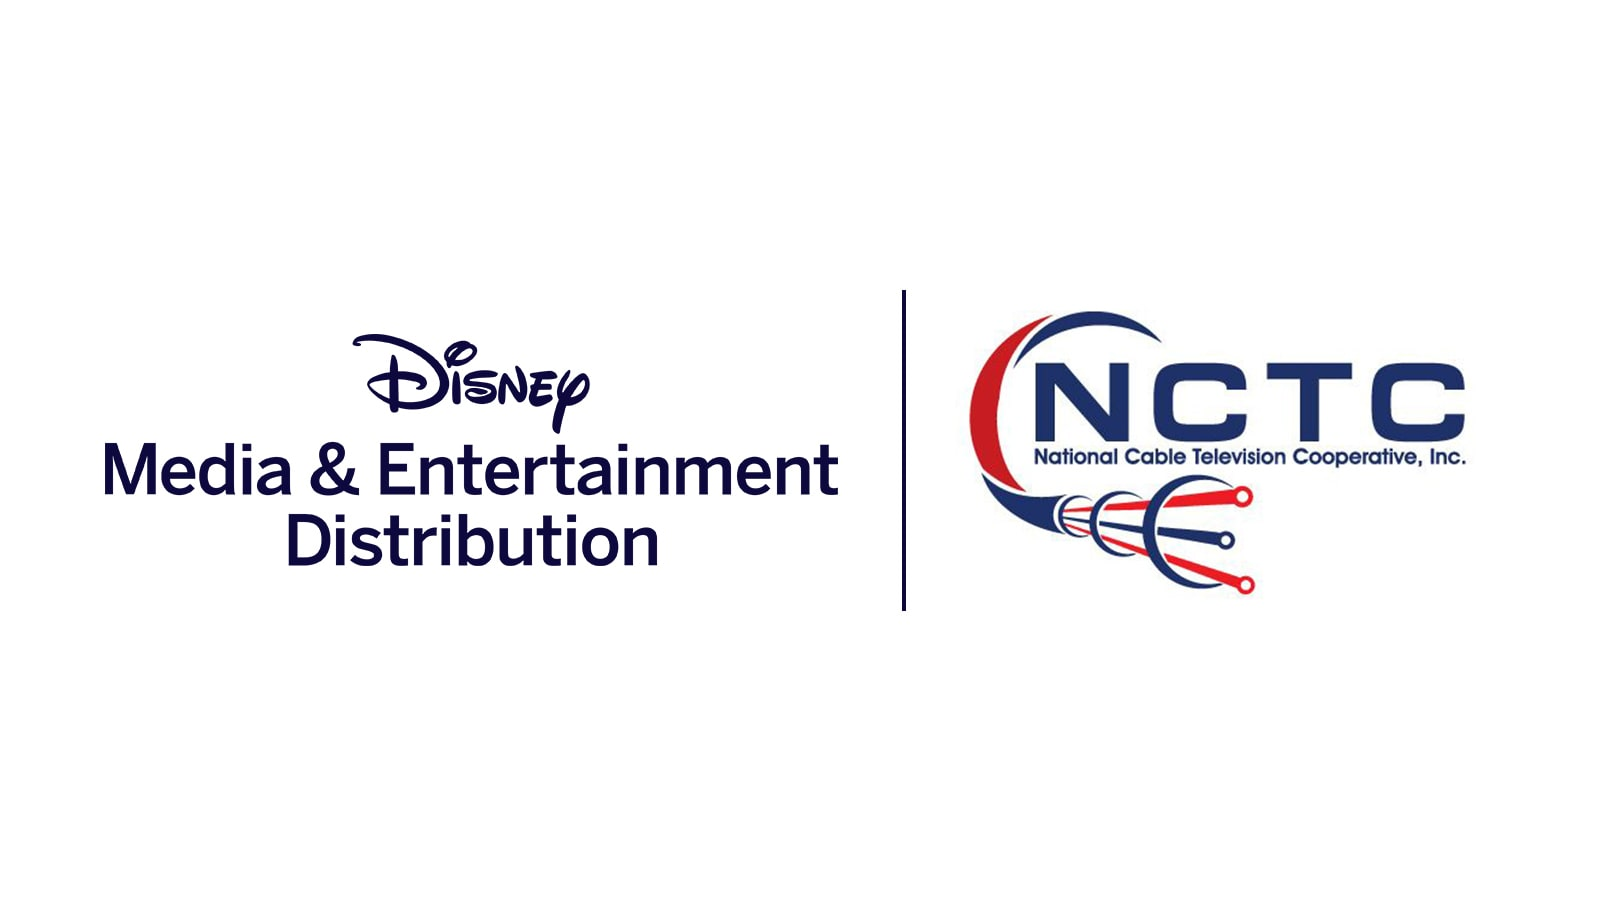 Disney Media & Entertainment Distribution and The National Cable Television Cooperative Reach Comprehensive Carriage Agreement